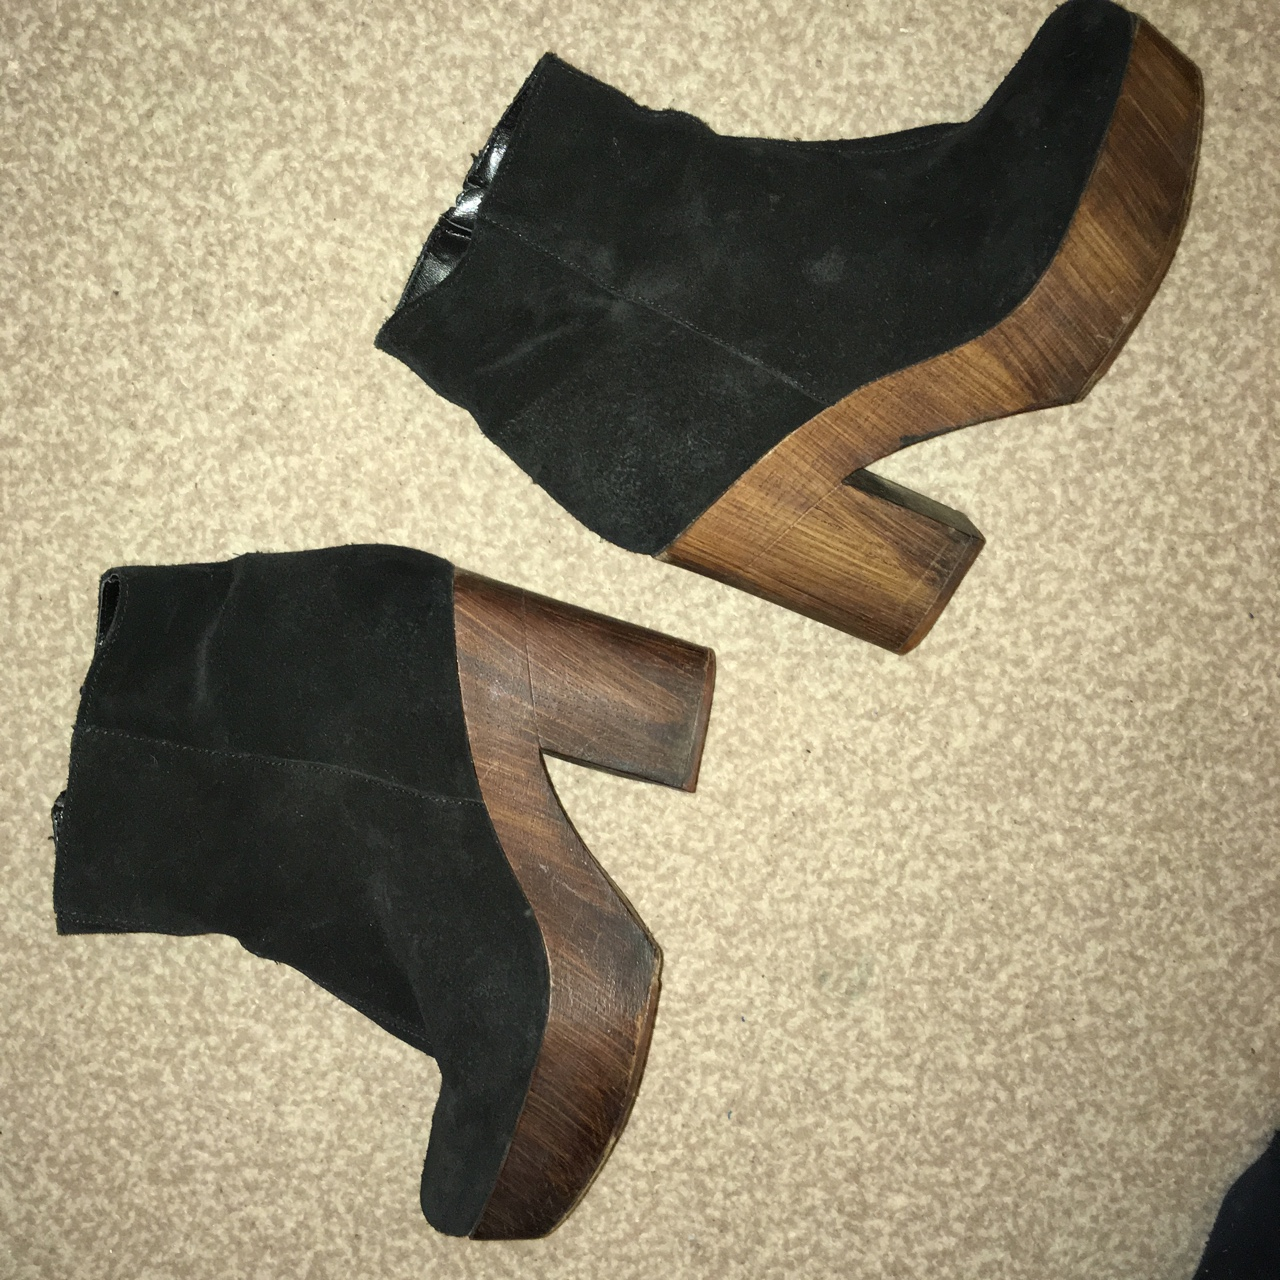 927d45da005 Topshop platform heel boot. Black suede with wooden... - Depop